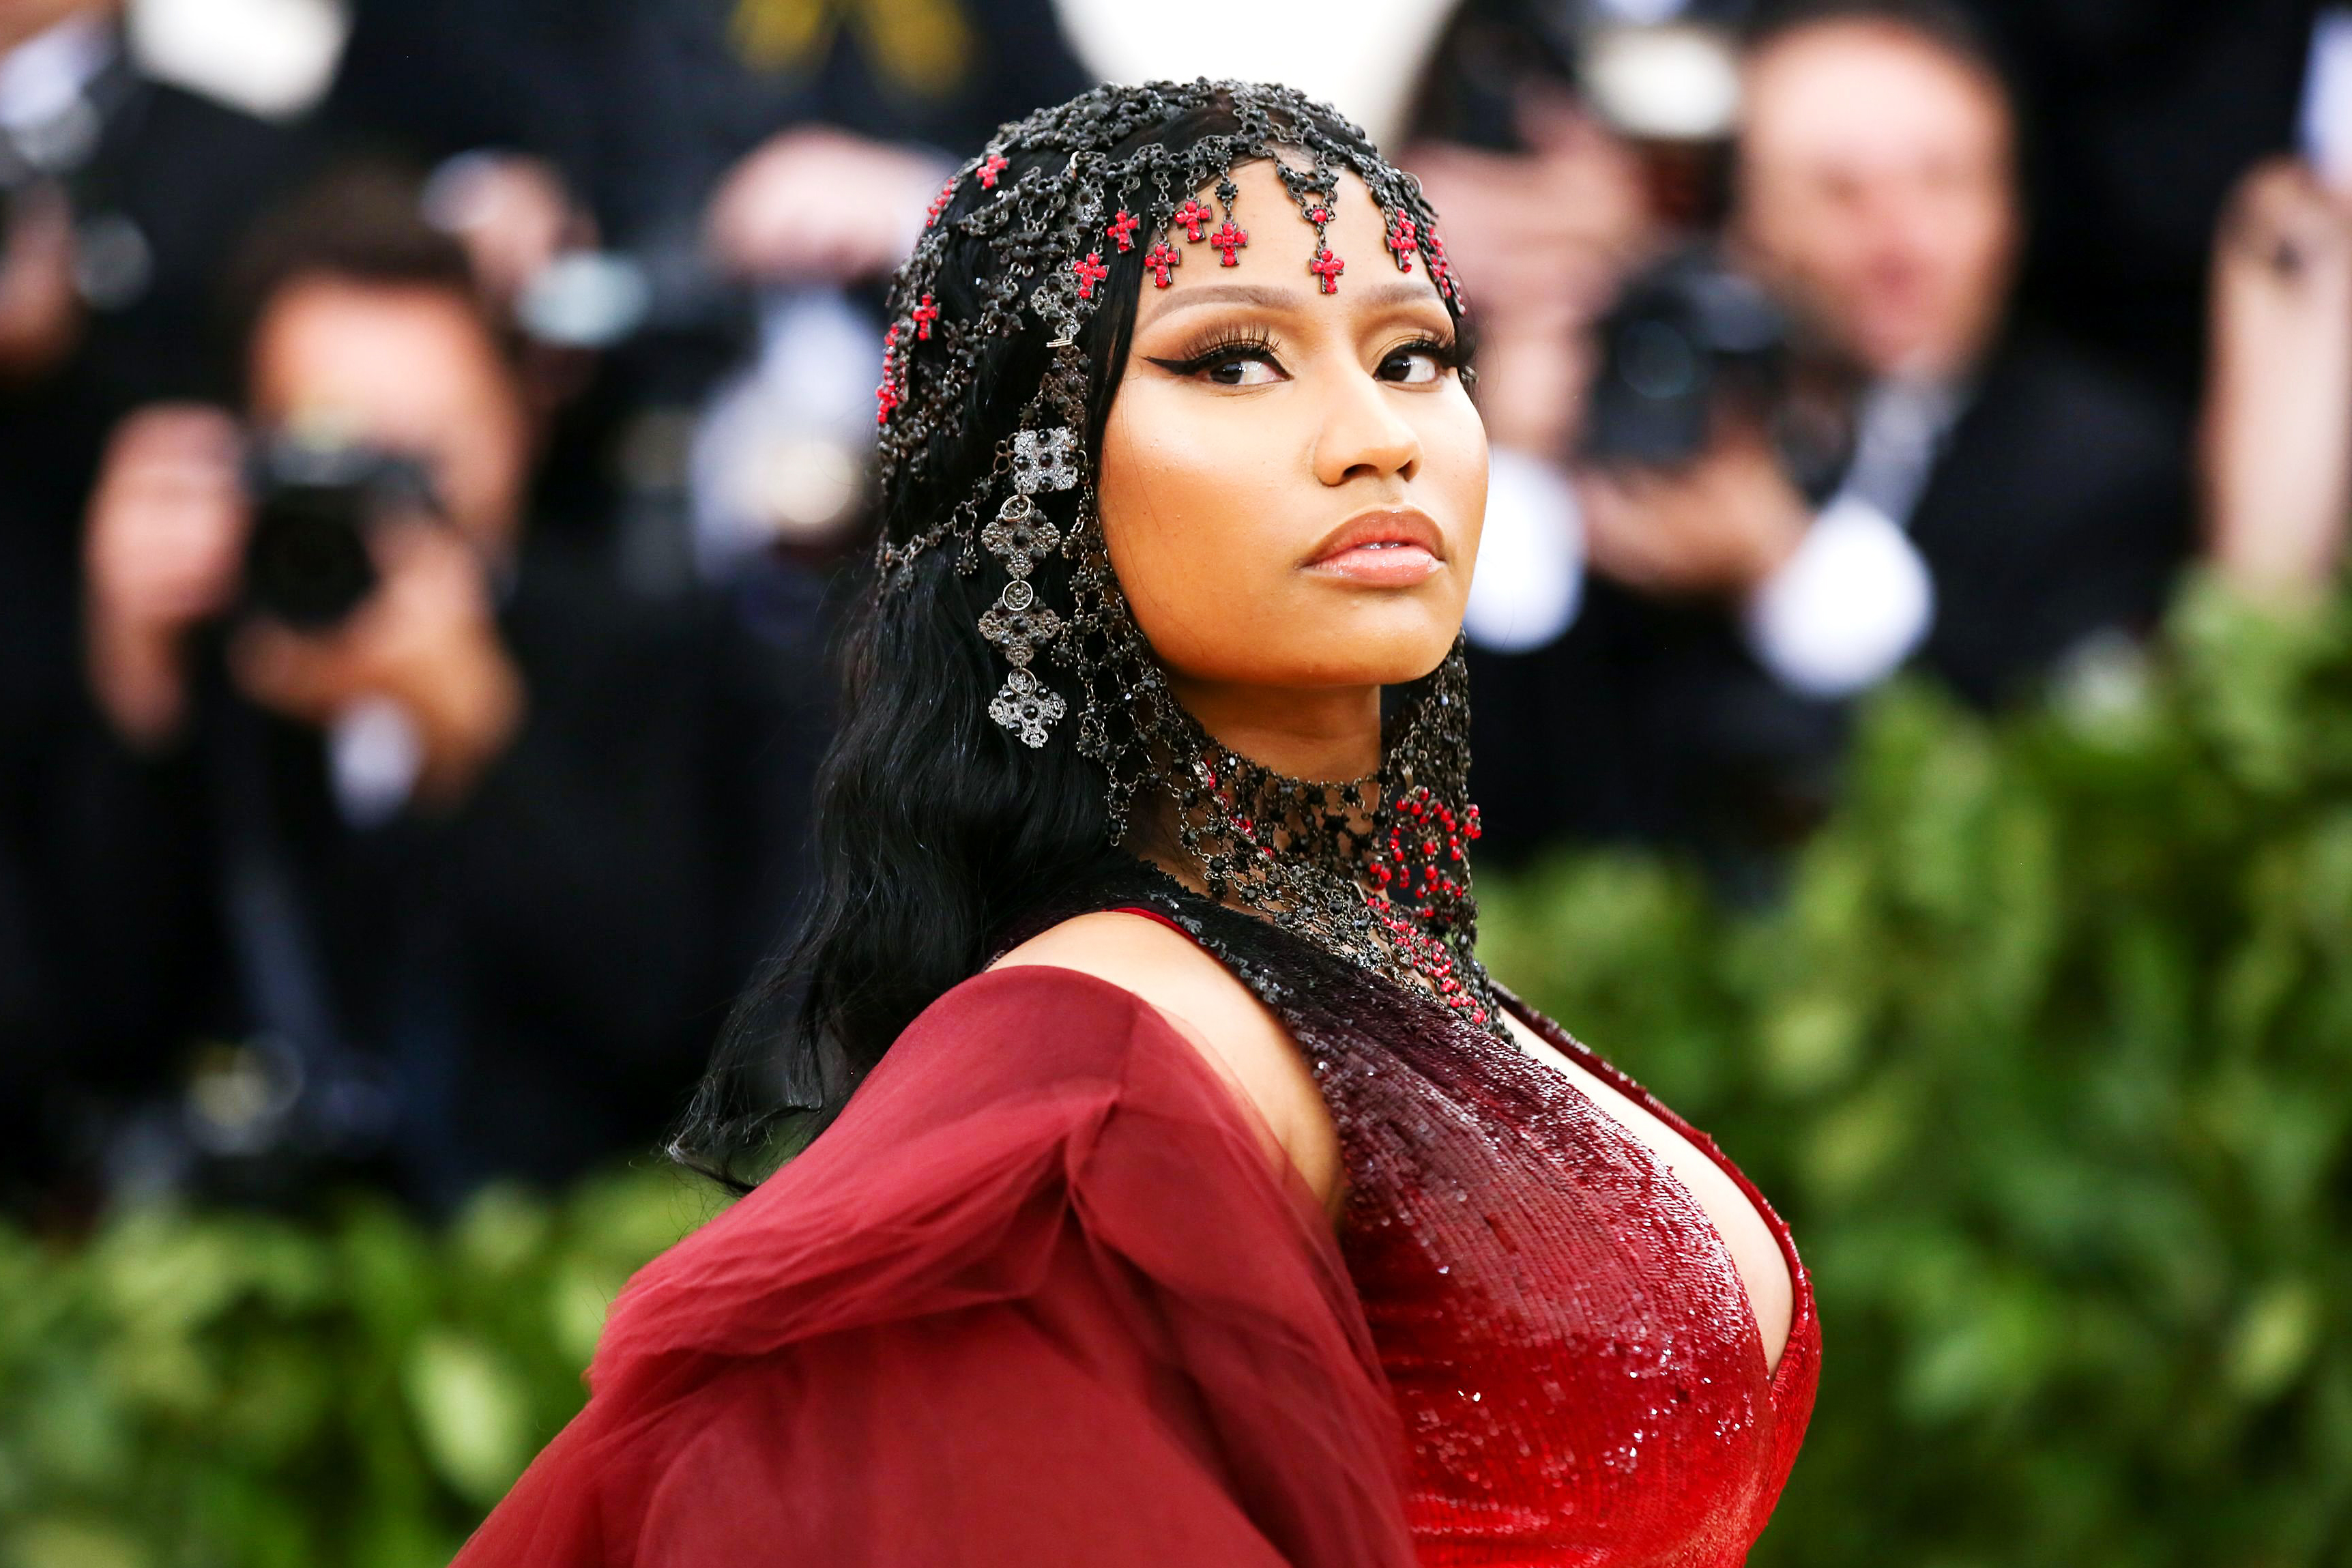 nicki-minaj-saudi-arabia-time-billboard-cosmopolitan